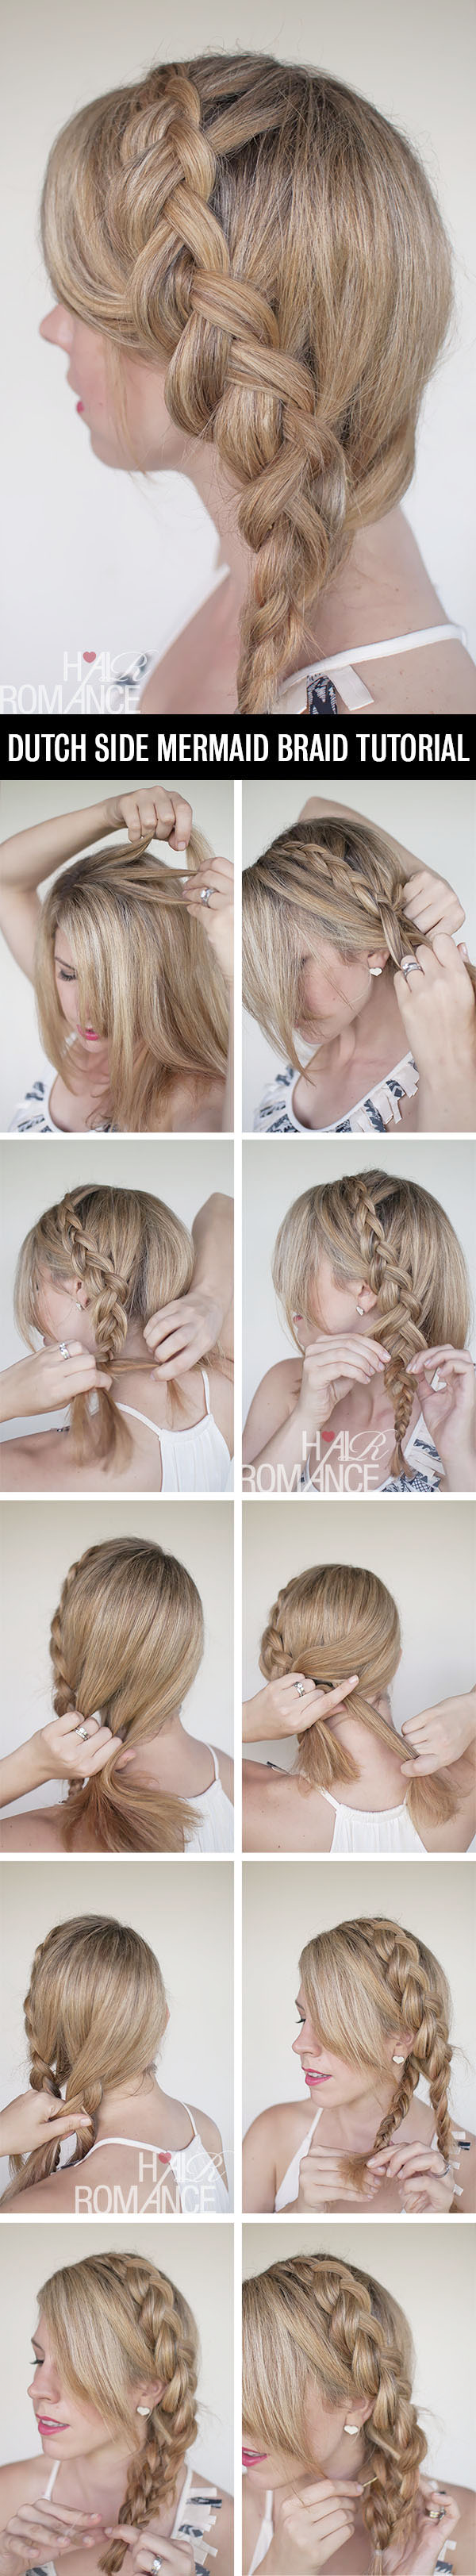 Hair Romance - a Dutch mermaid side braid hairstyle tutorial